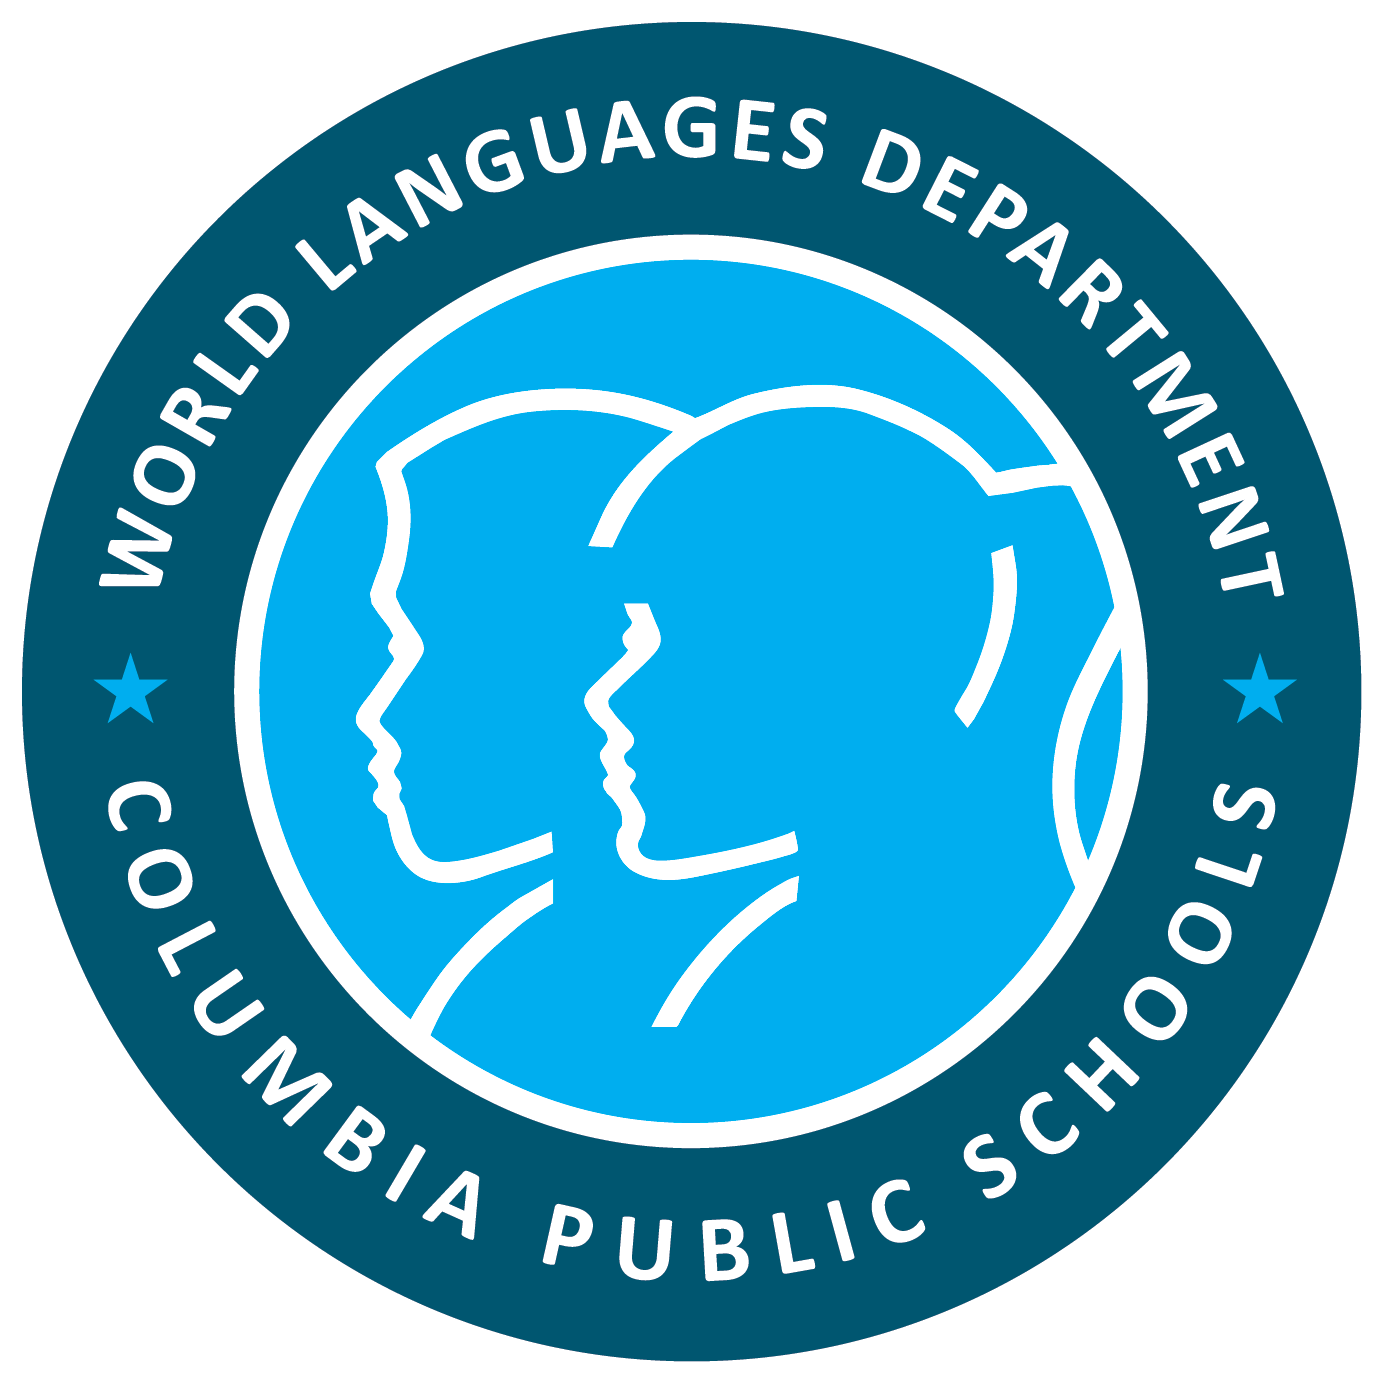 WorldLanguagesDepartmentLogo